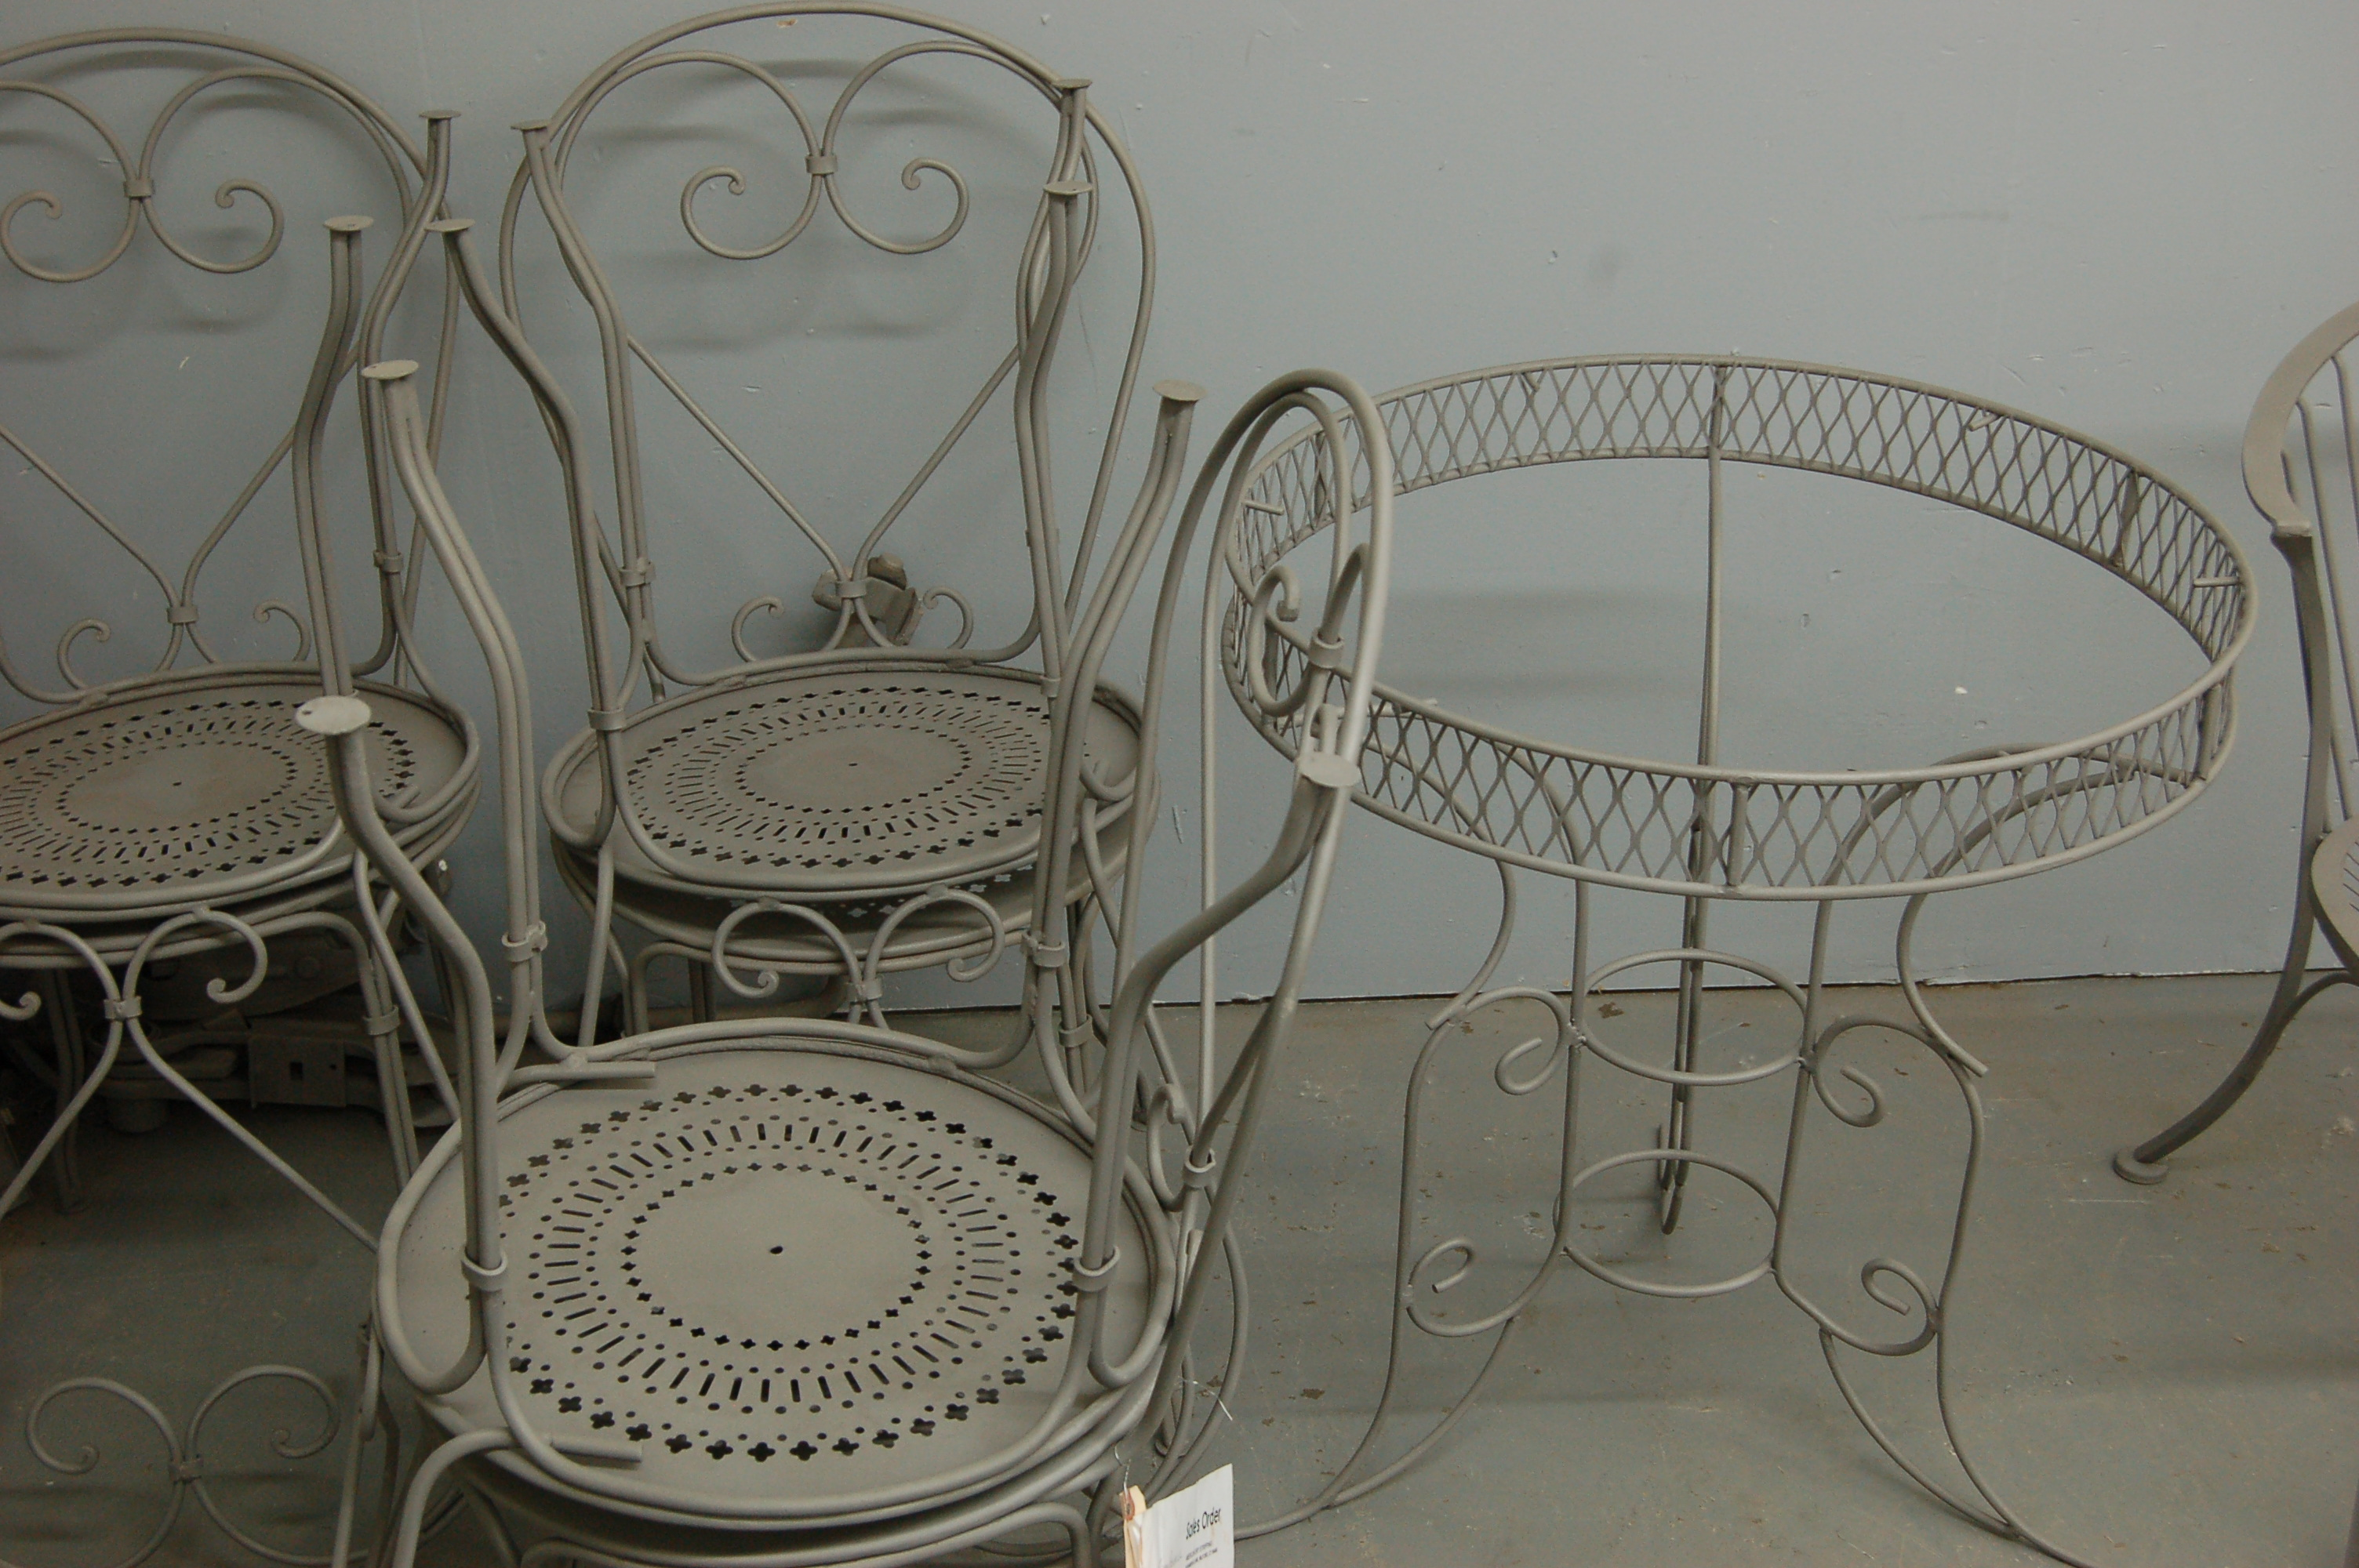 Stripped metal patio furniture awaiting powder coating